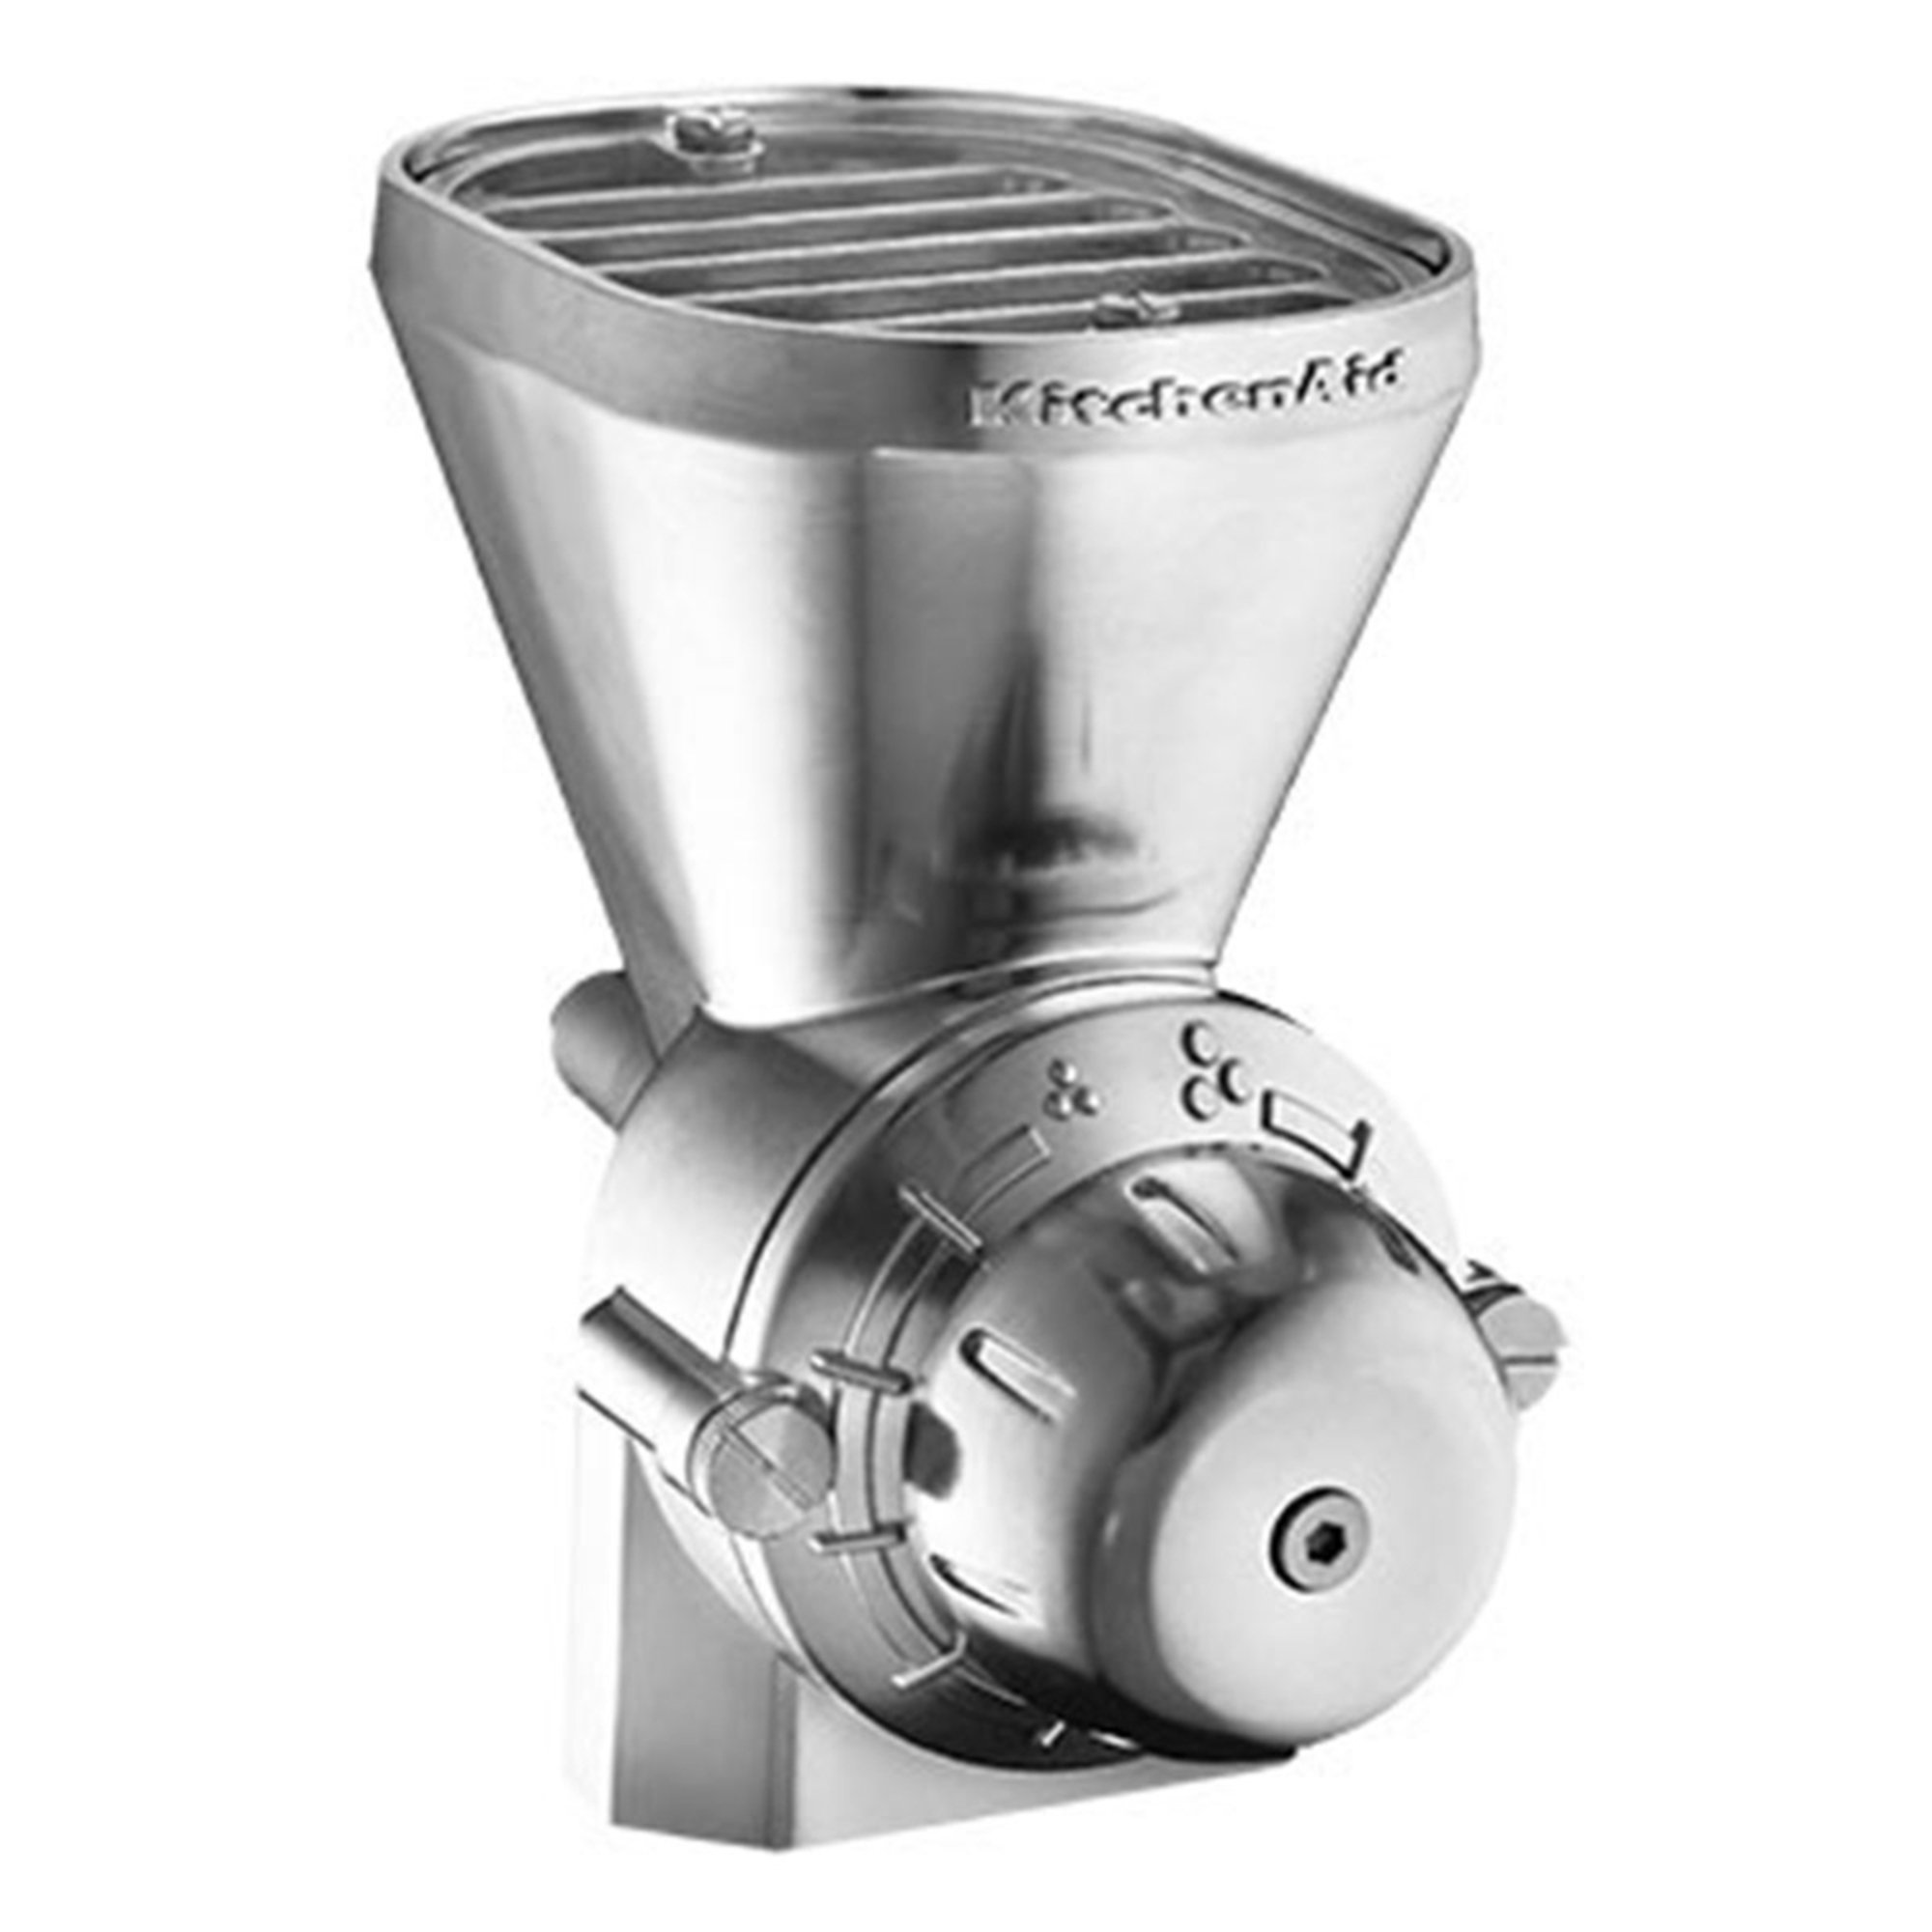 Kitchenaid Grain Mill Attachment For Stand Mixers (kgm